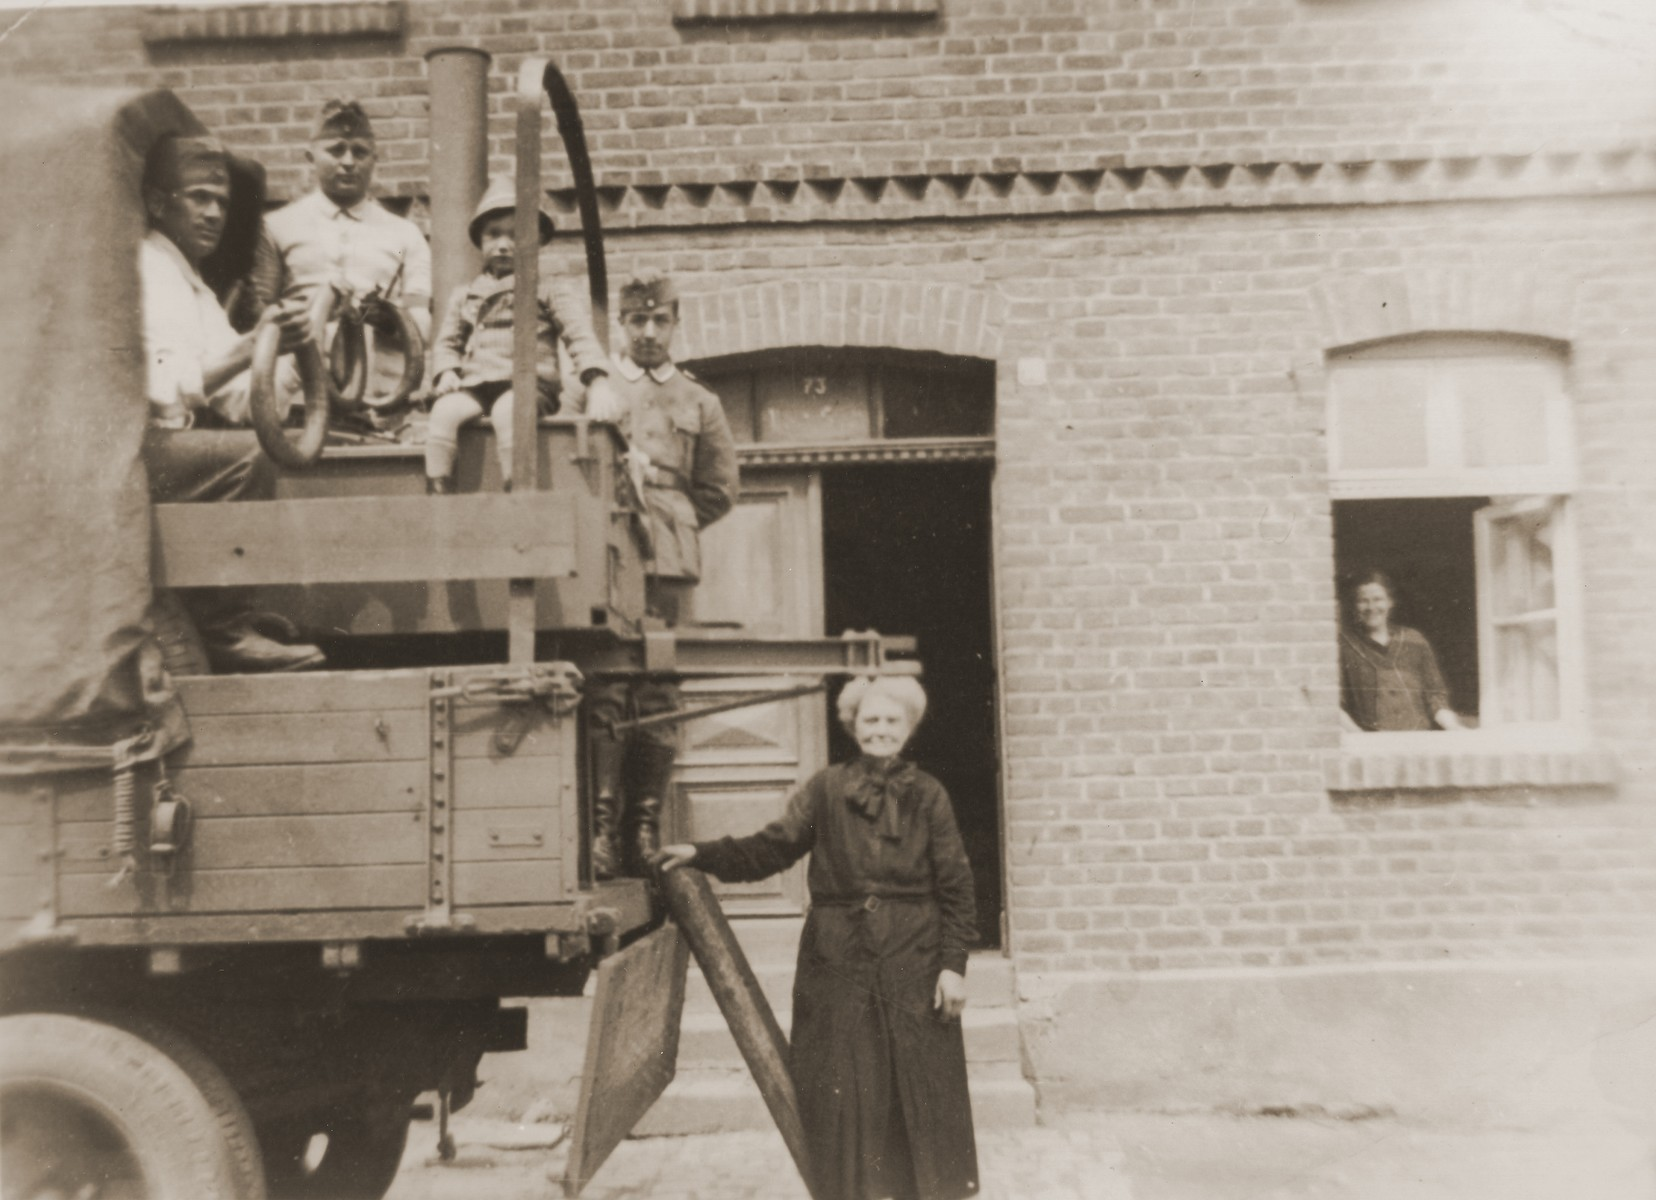 Two-year-old Manfred Stern sits with German soldiers atop a military truck parked in front of the home of his great-aunt Rosa Stern.  Rosa is pictured looking out her front window, while the boy's grandmother, Mathilde Stern, stands next to the truck.